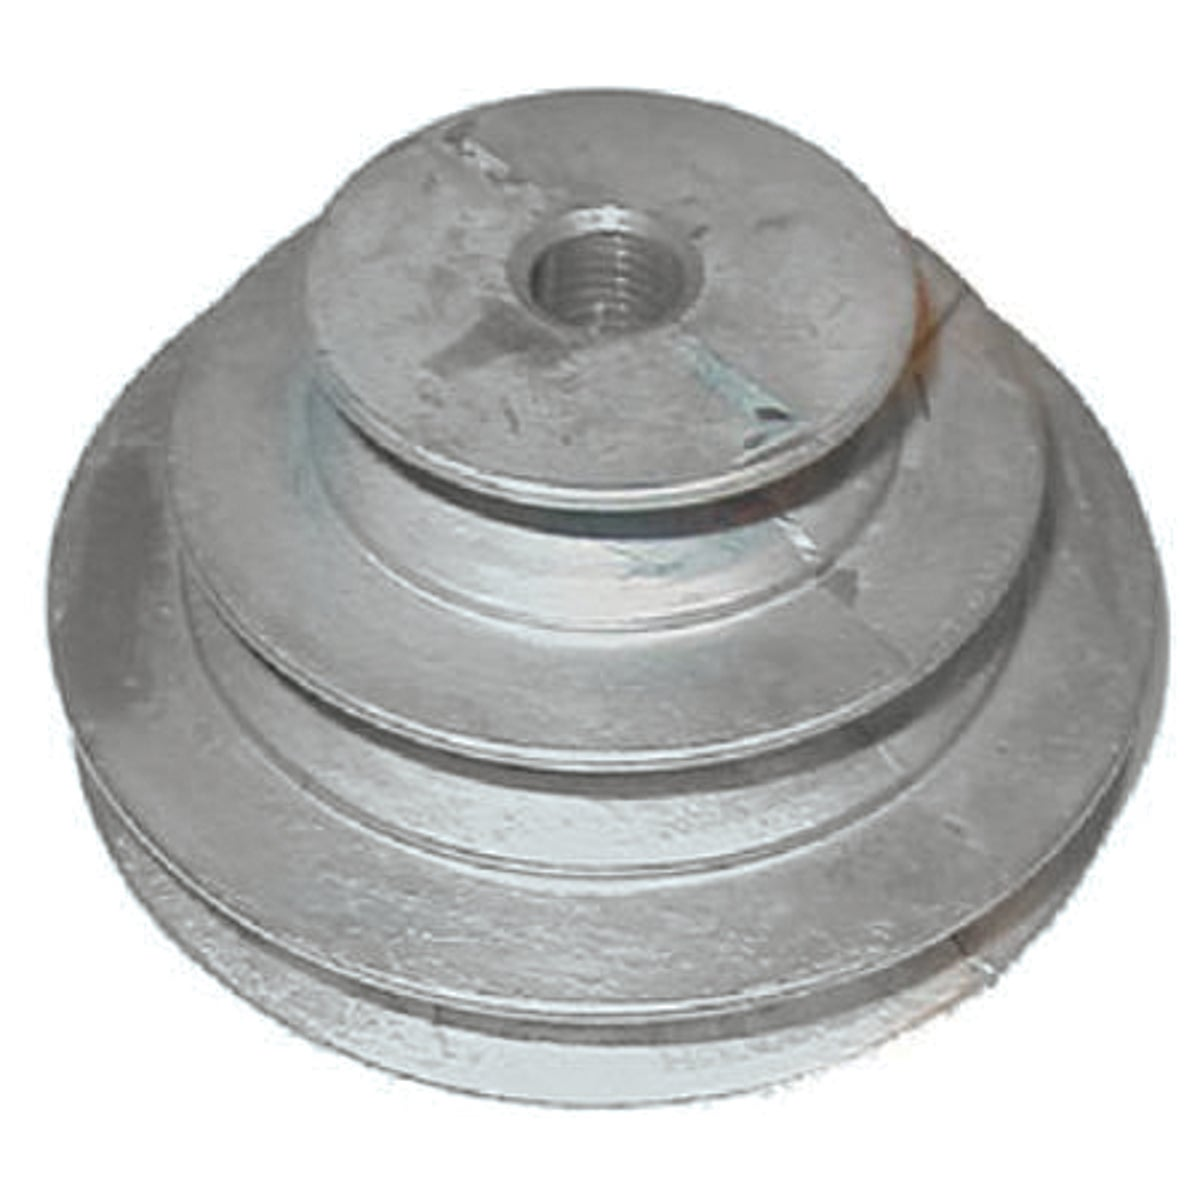 "1/2"" 3-STEP CONE PULLEY - 146-5 by Chicago Die Casting"